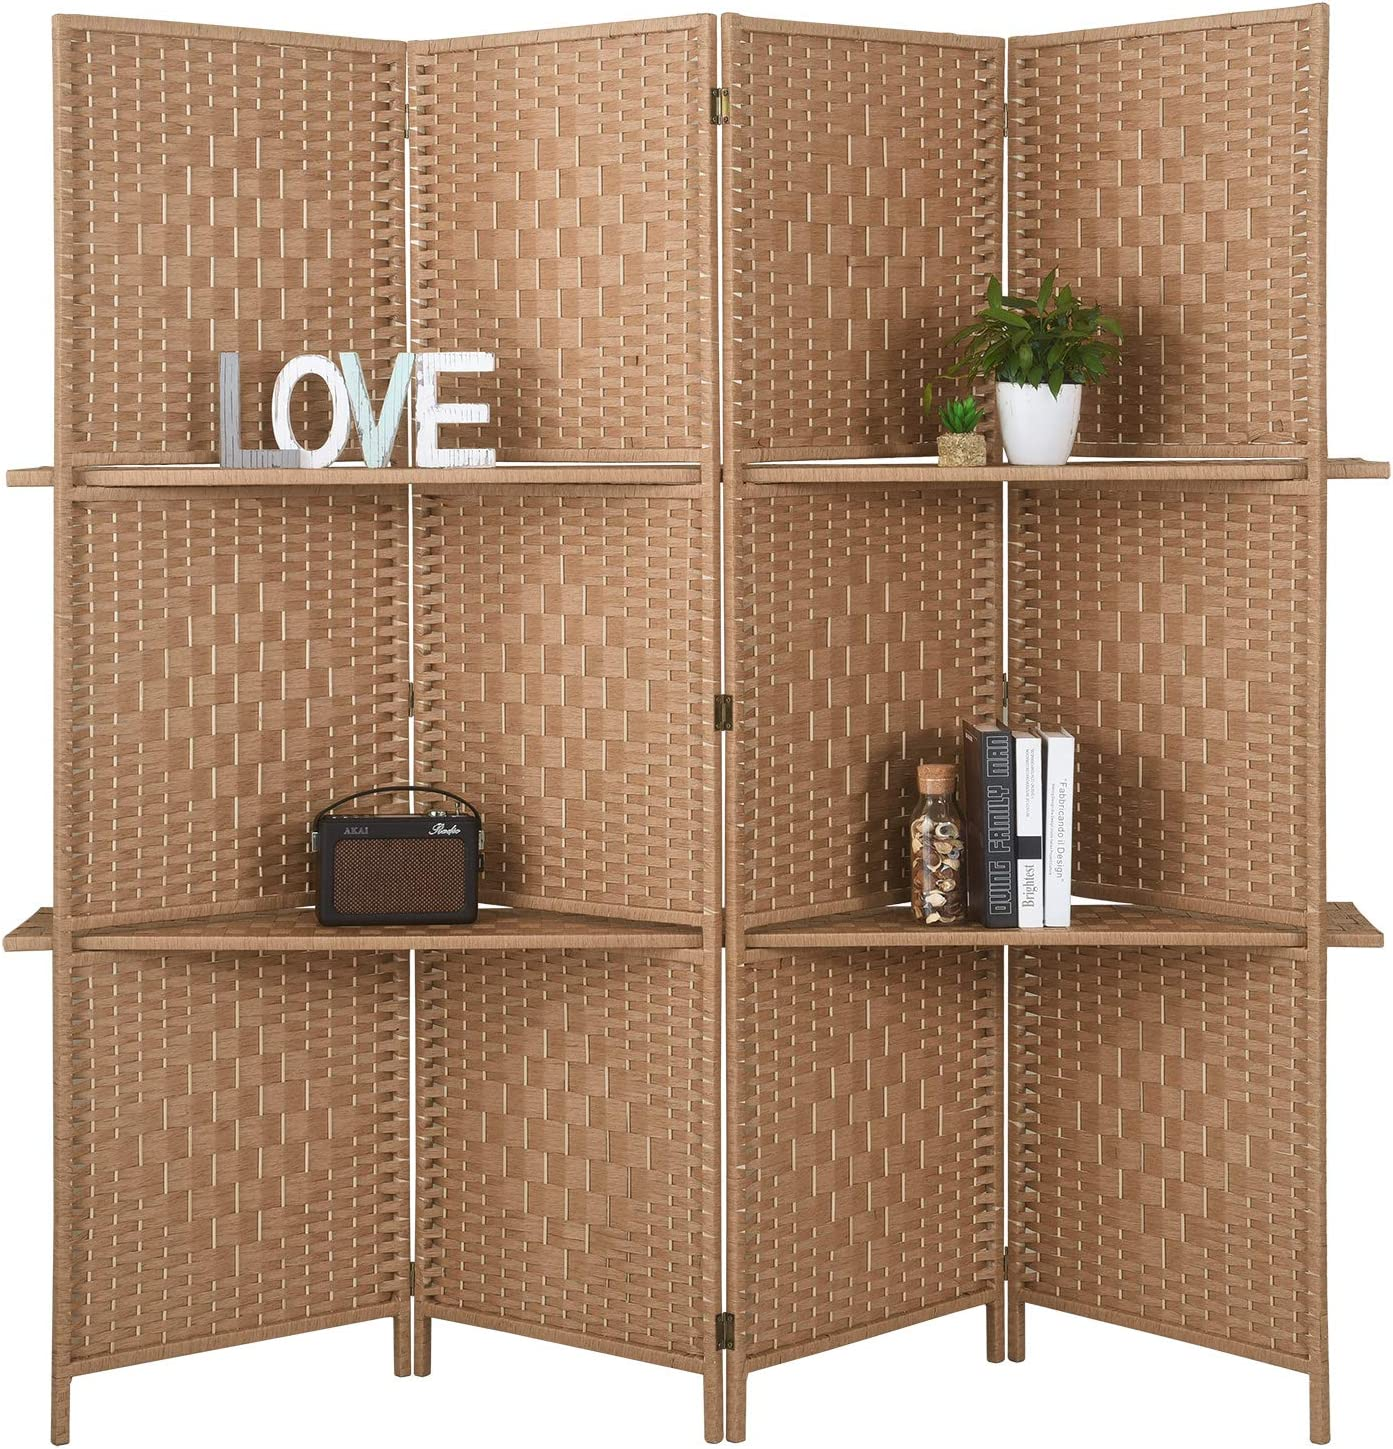 RHF 6 ft.Tall-Extra Wide Diamond Weave Fiber 4 Panels Room Divider,4 Panel Folding Screen Privacy, Partition Wall, Room Dividers with 2 Display Shelves,Natural-4 Panel, 2 Shelves